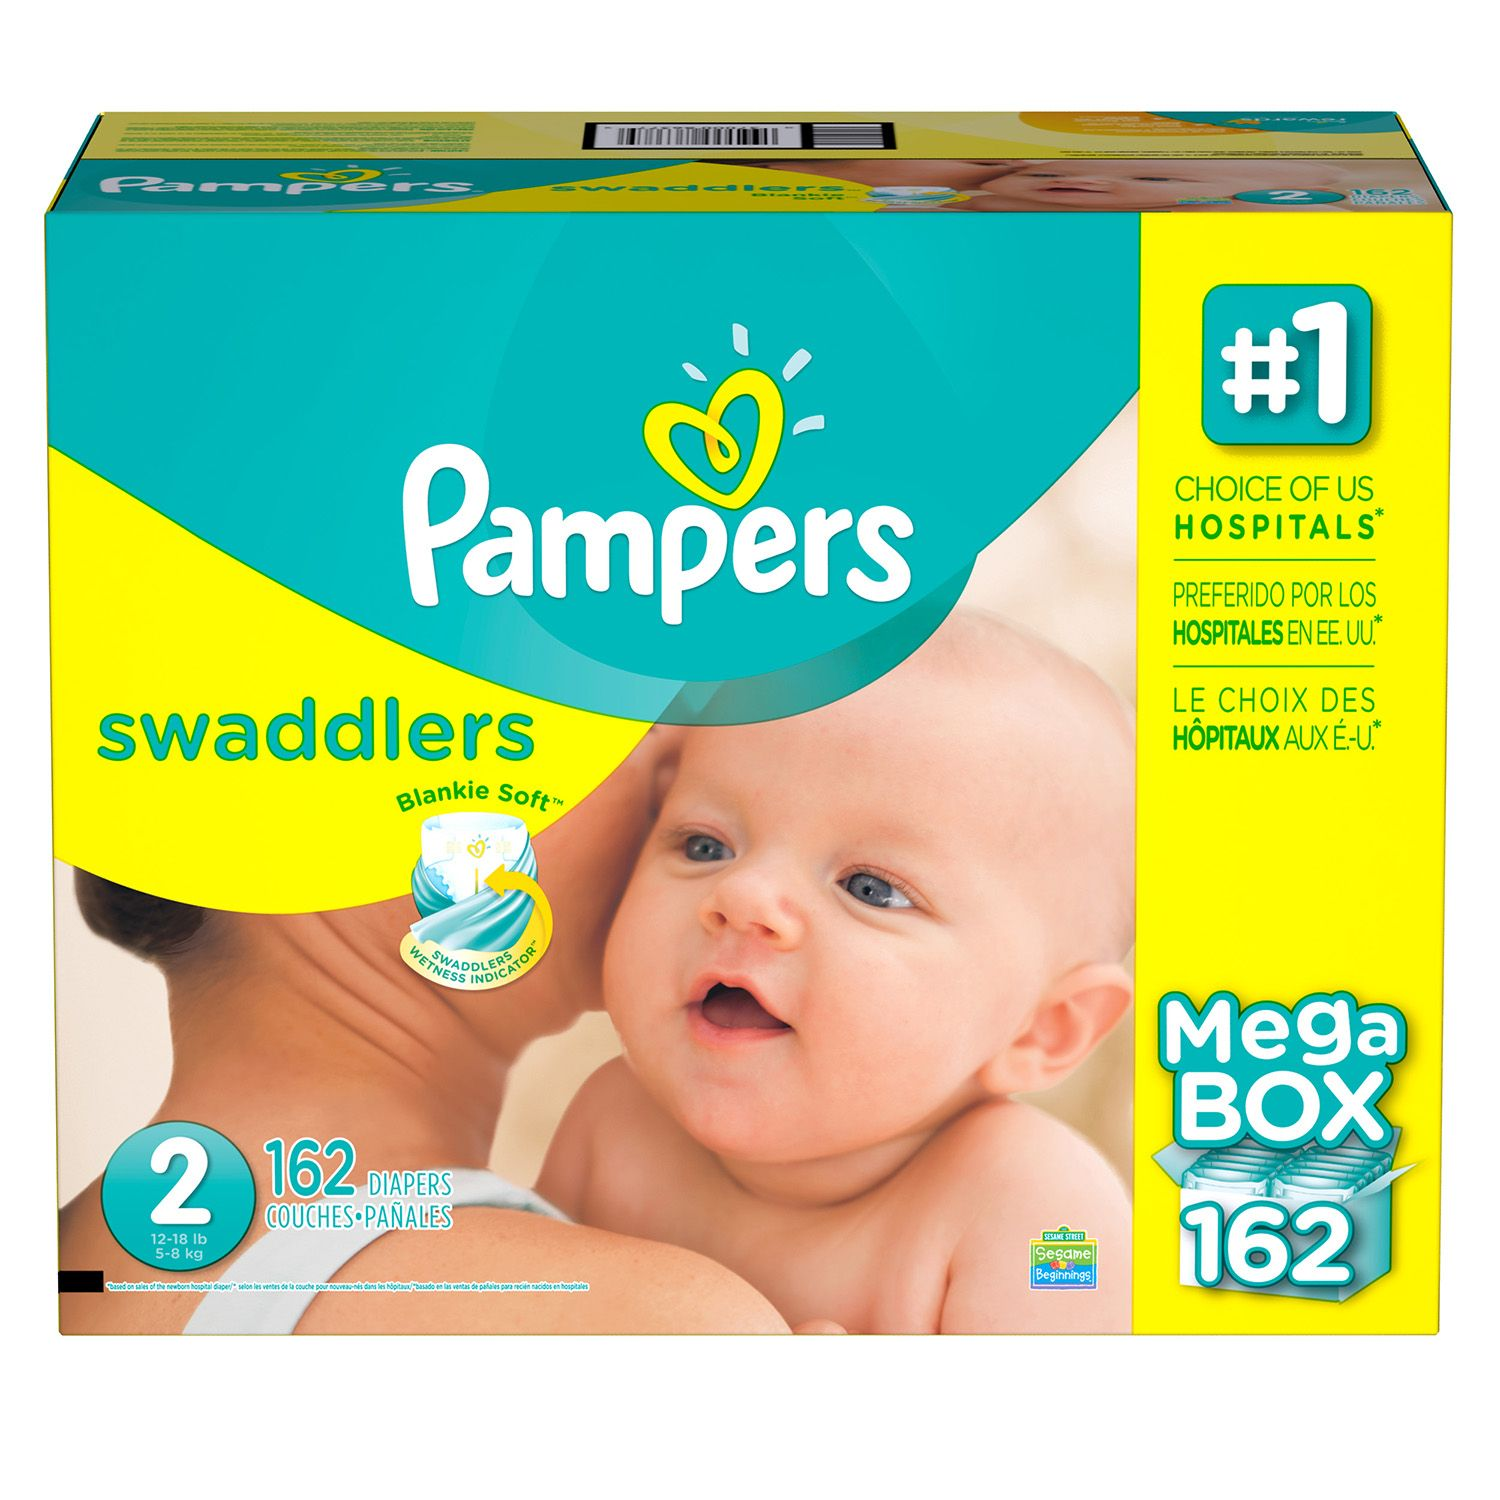 Procter & Gamble Pampers Swaddlers Diapers (Size 2, 162 ct.)